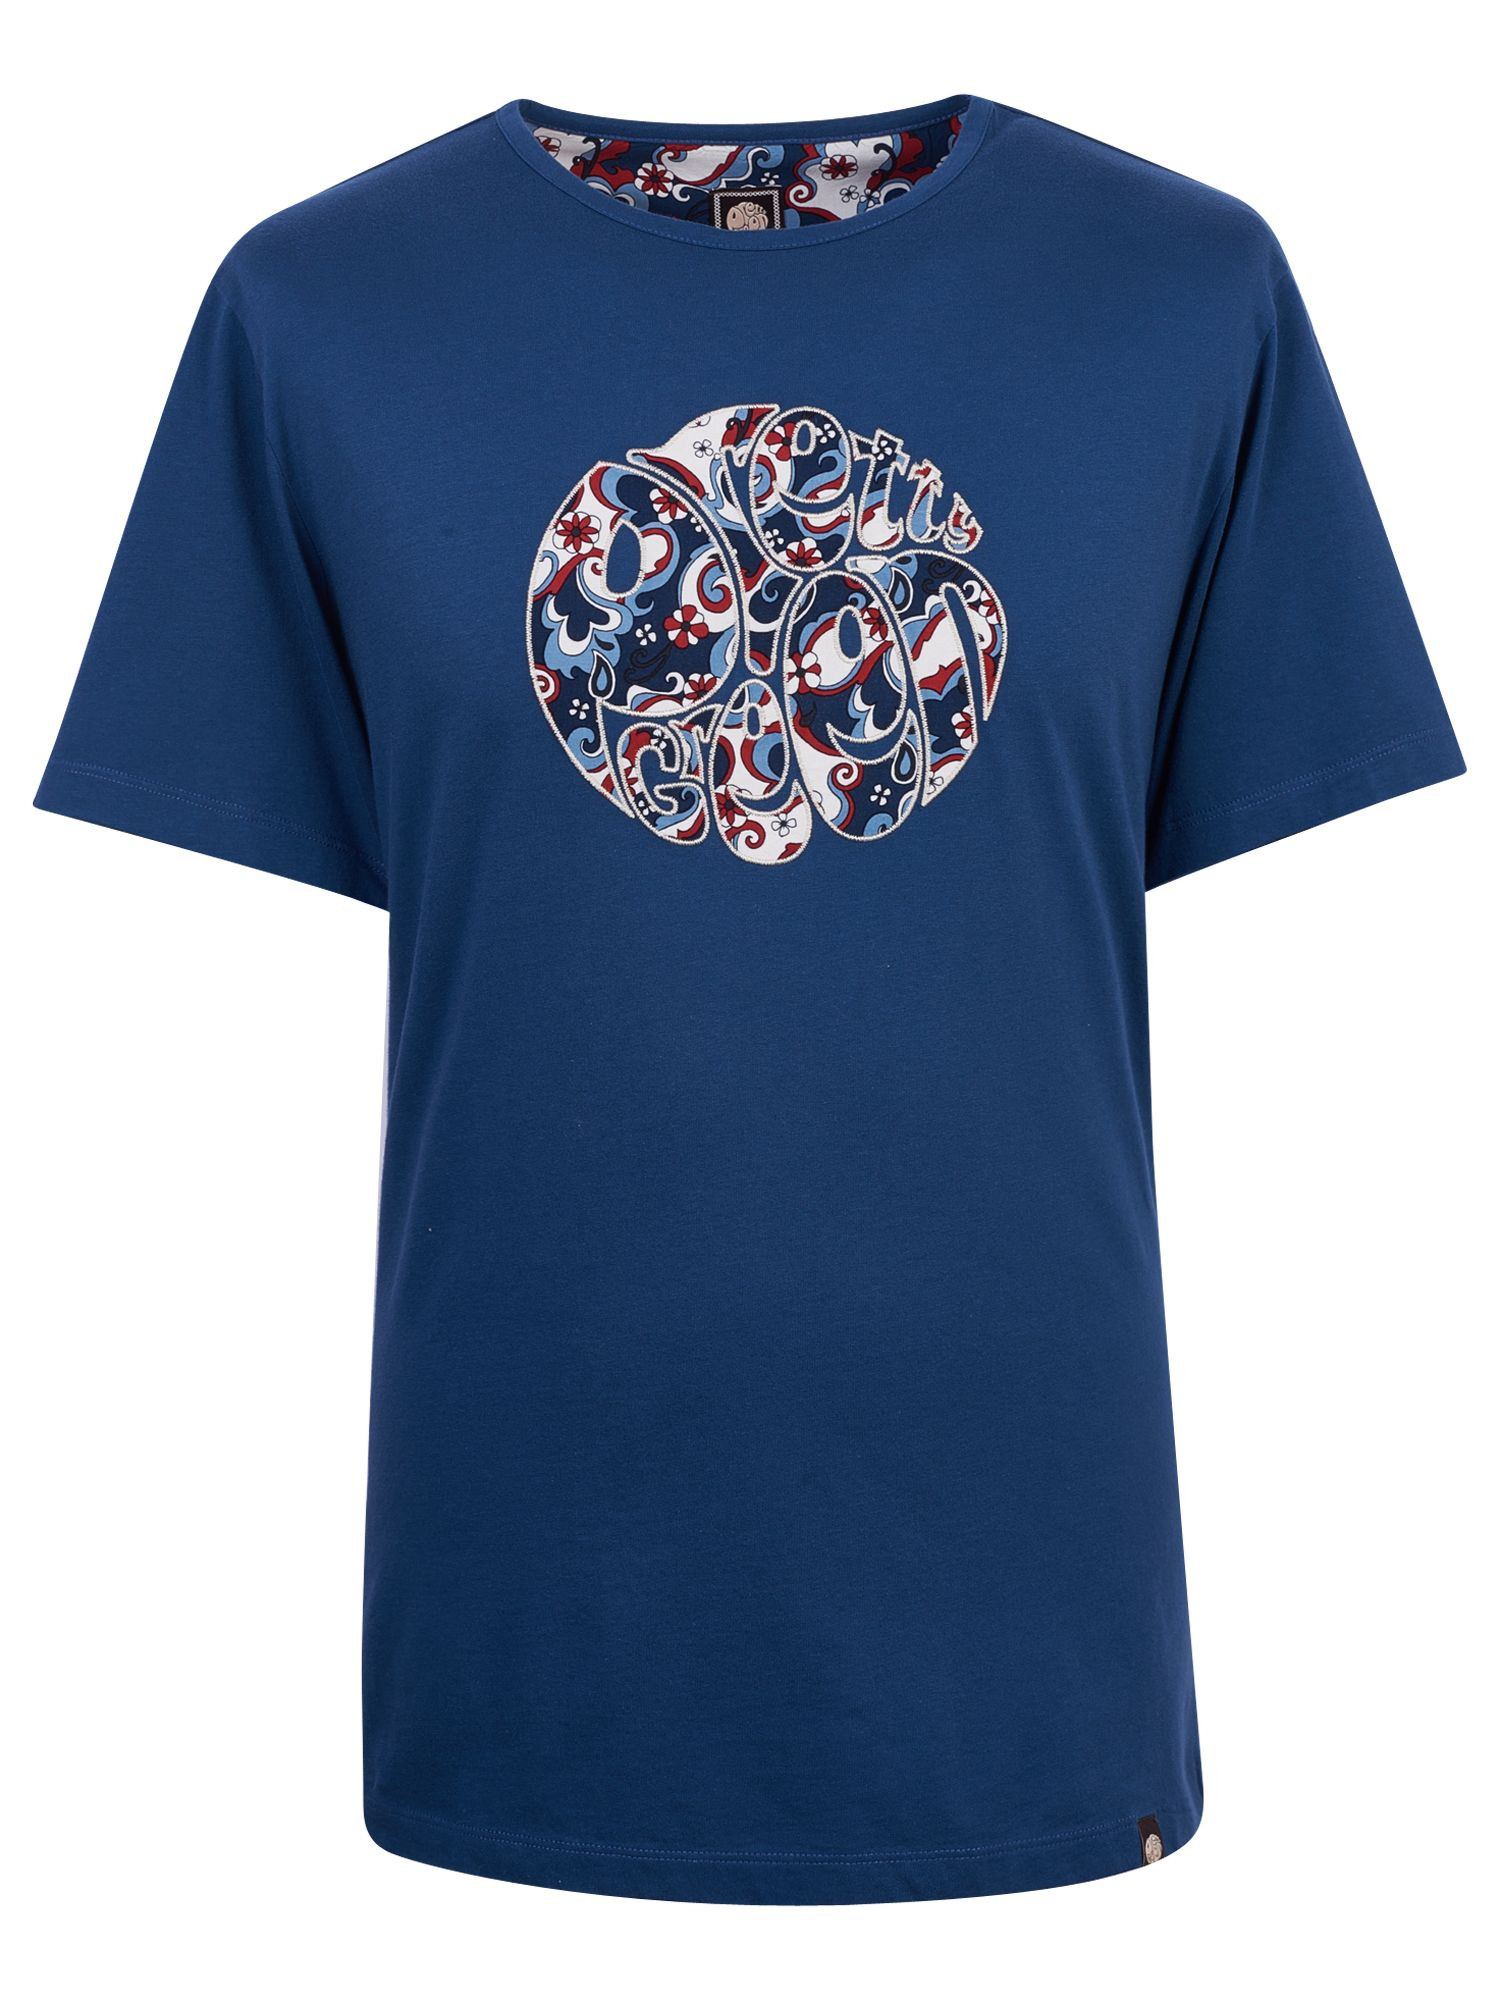 Men's Pretty Green Floral Print Applique T-Shirt, Dark Blue